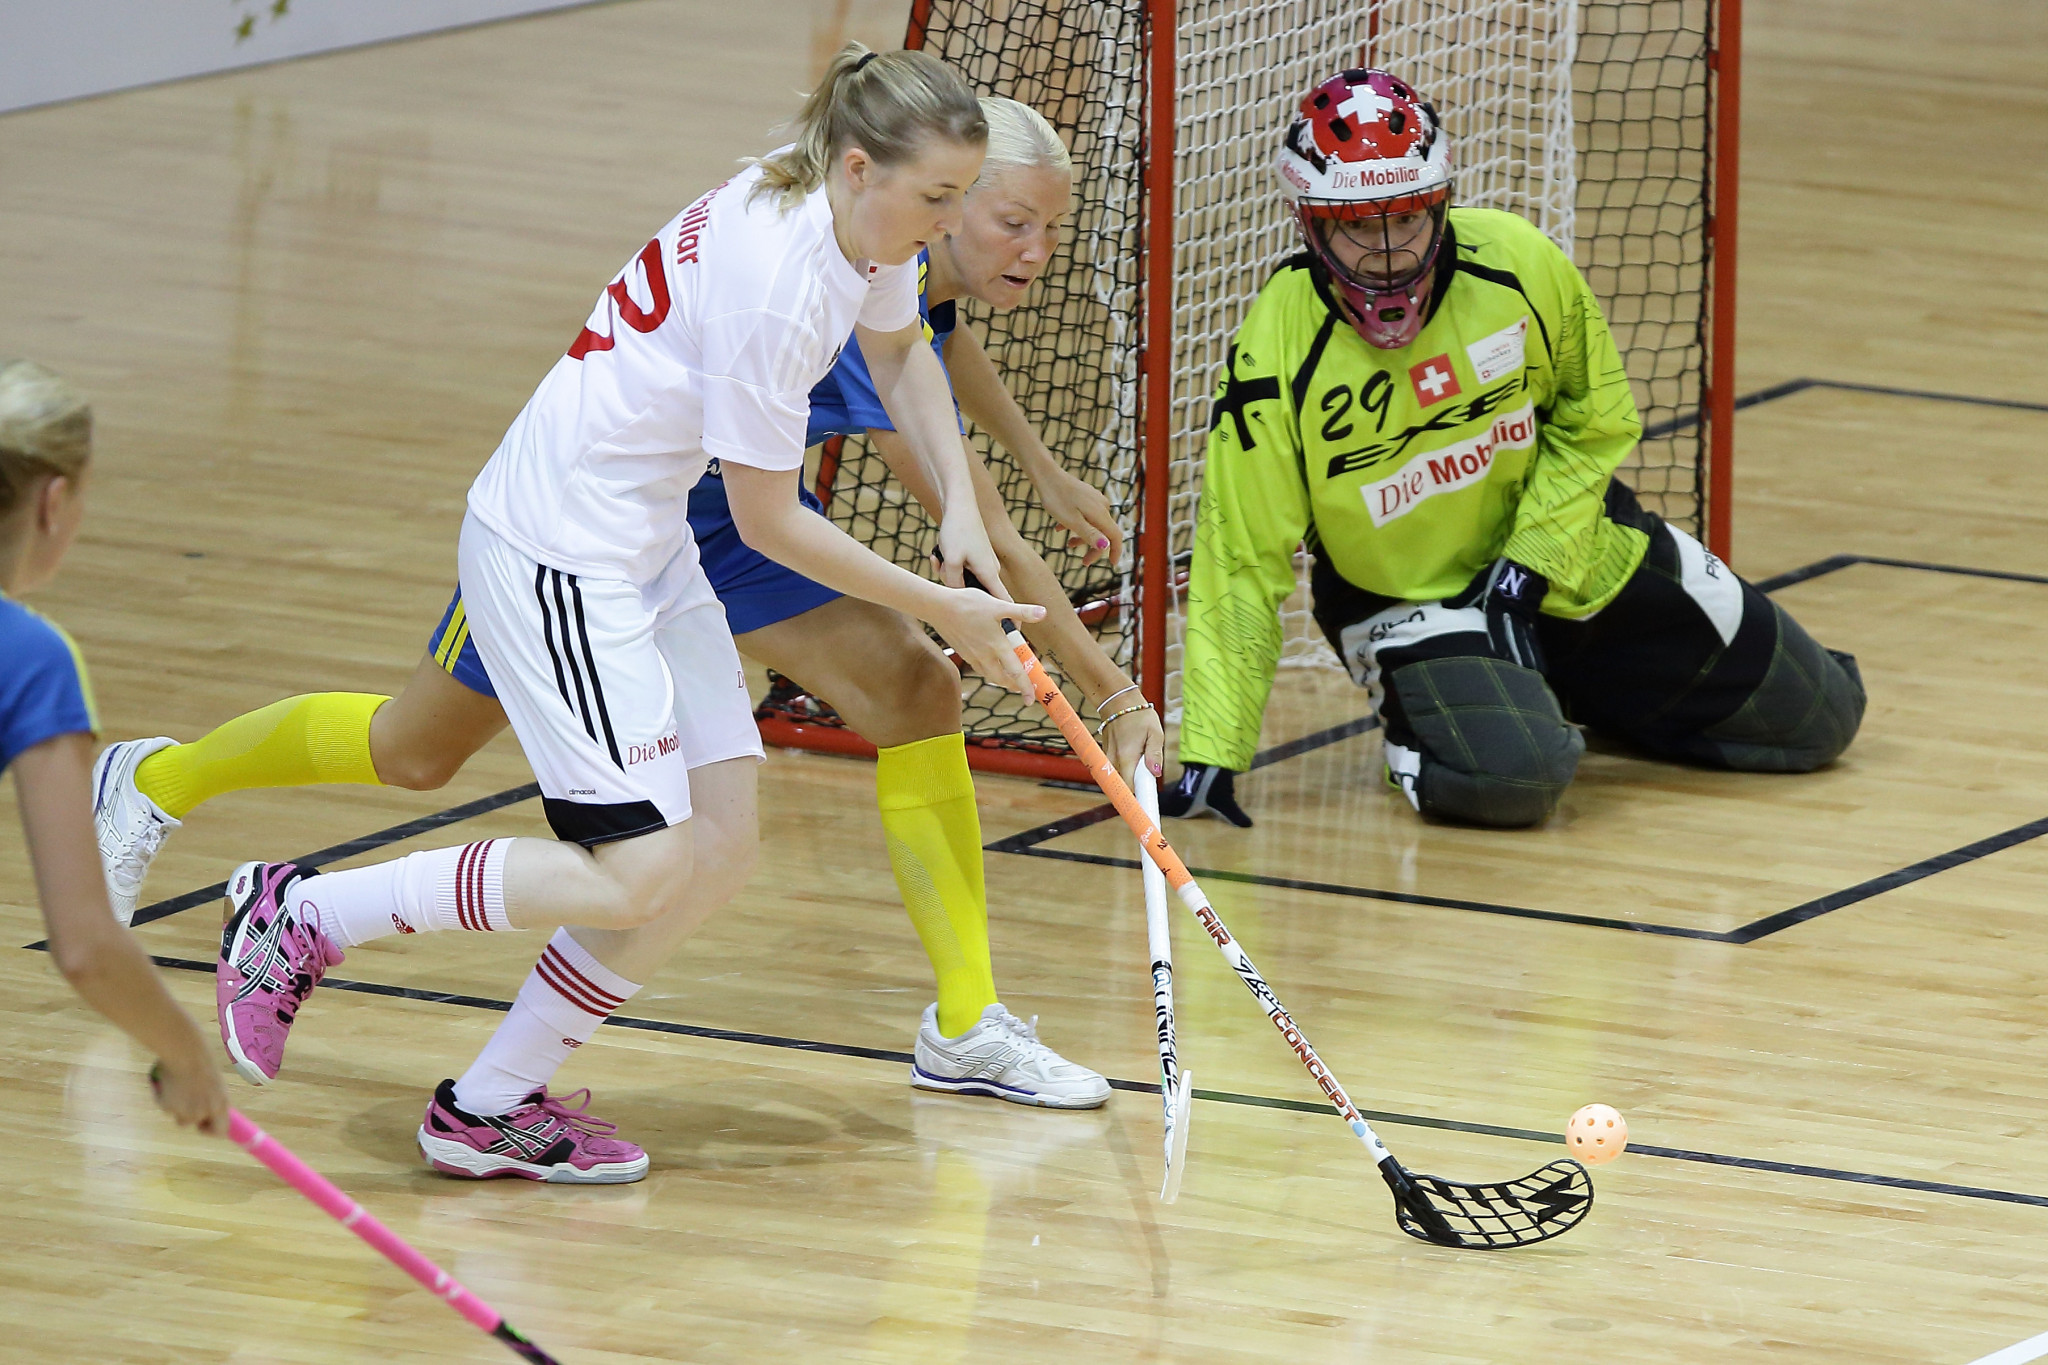 Floorball task force finalise first draft of future strategy for next year